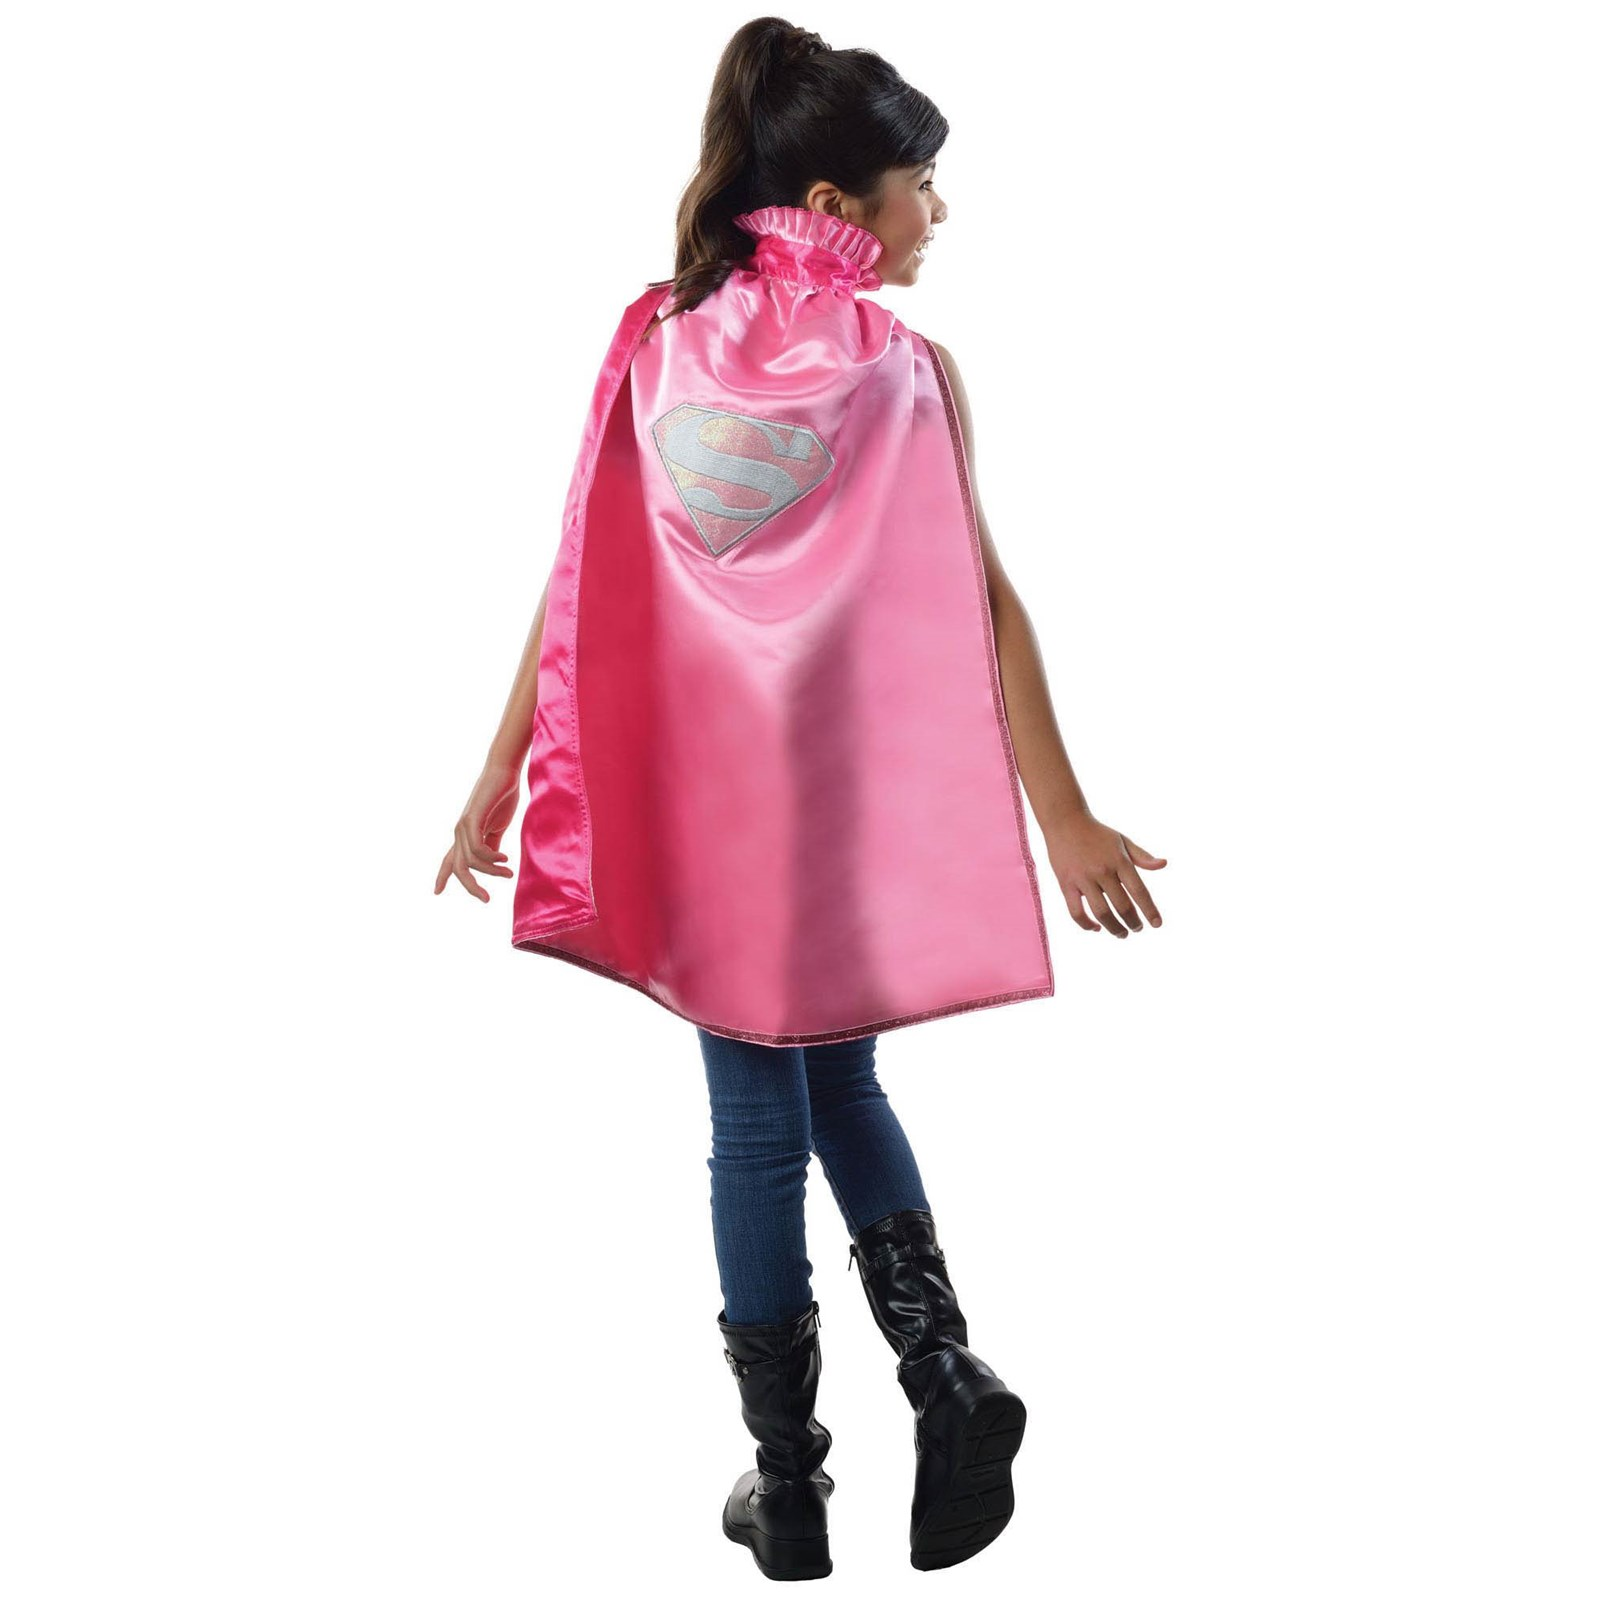 Kids Supergirl Deluxe Cape